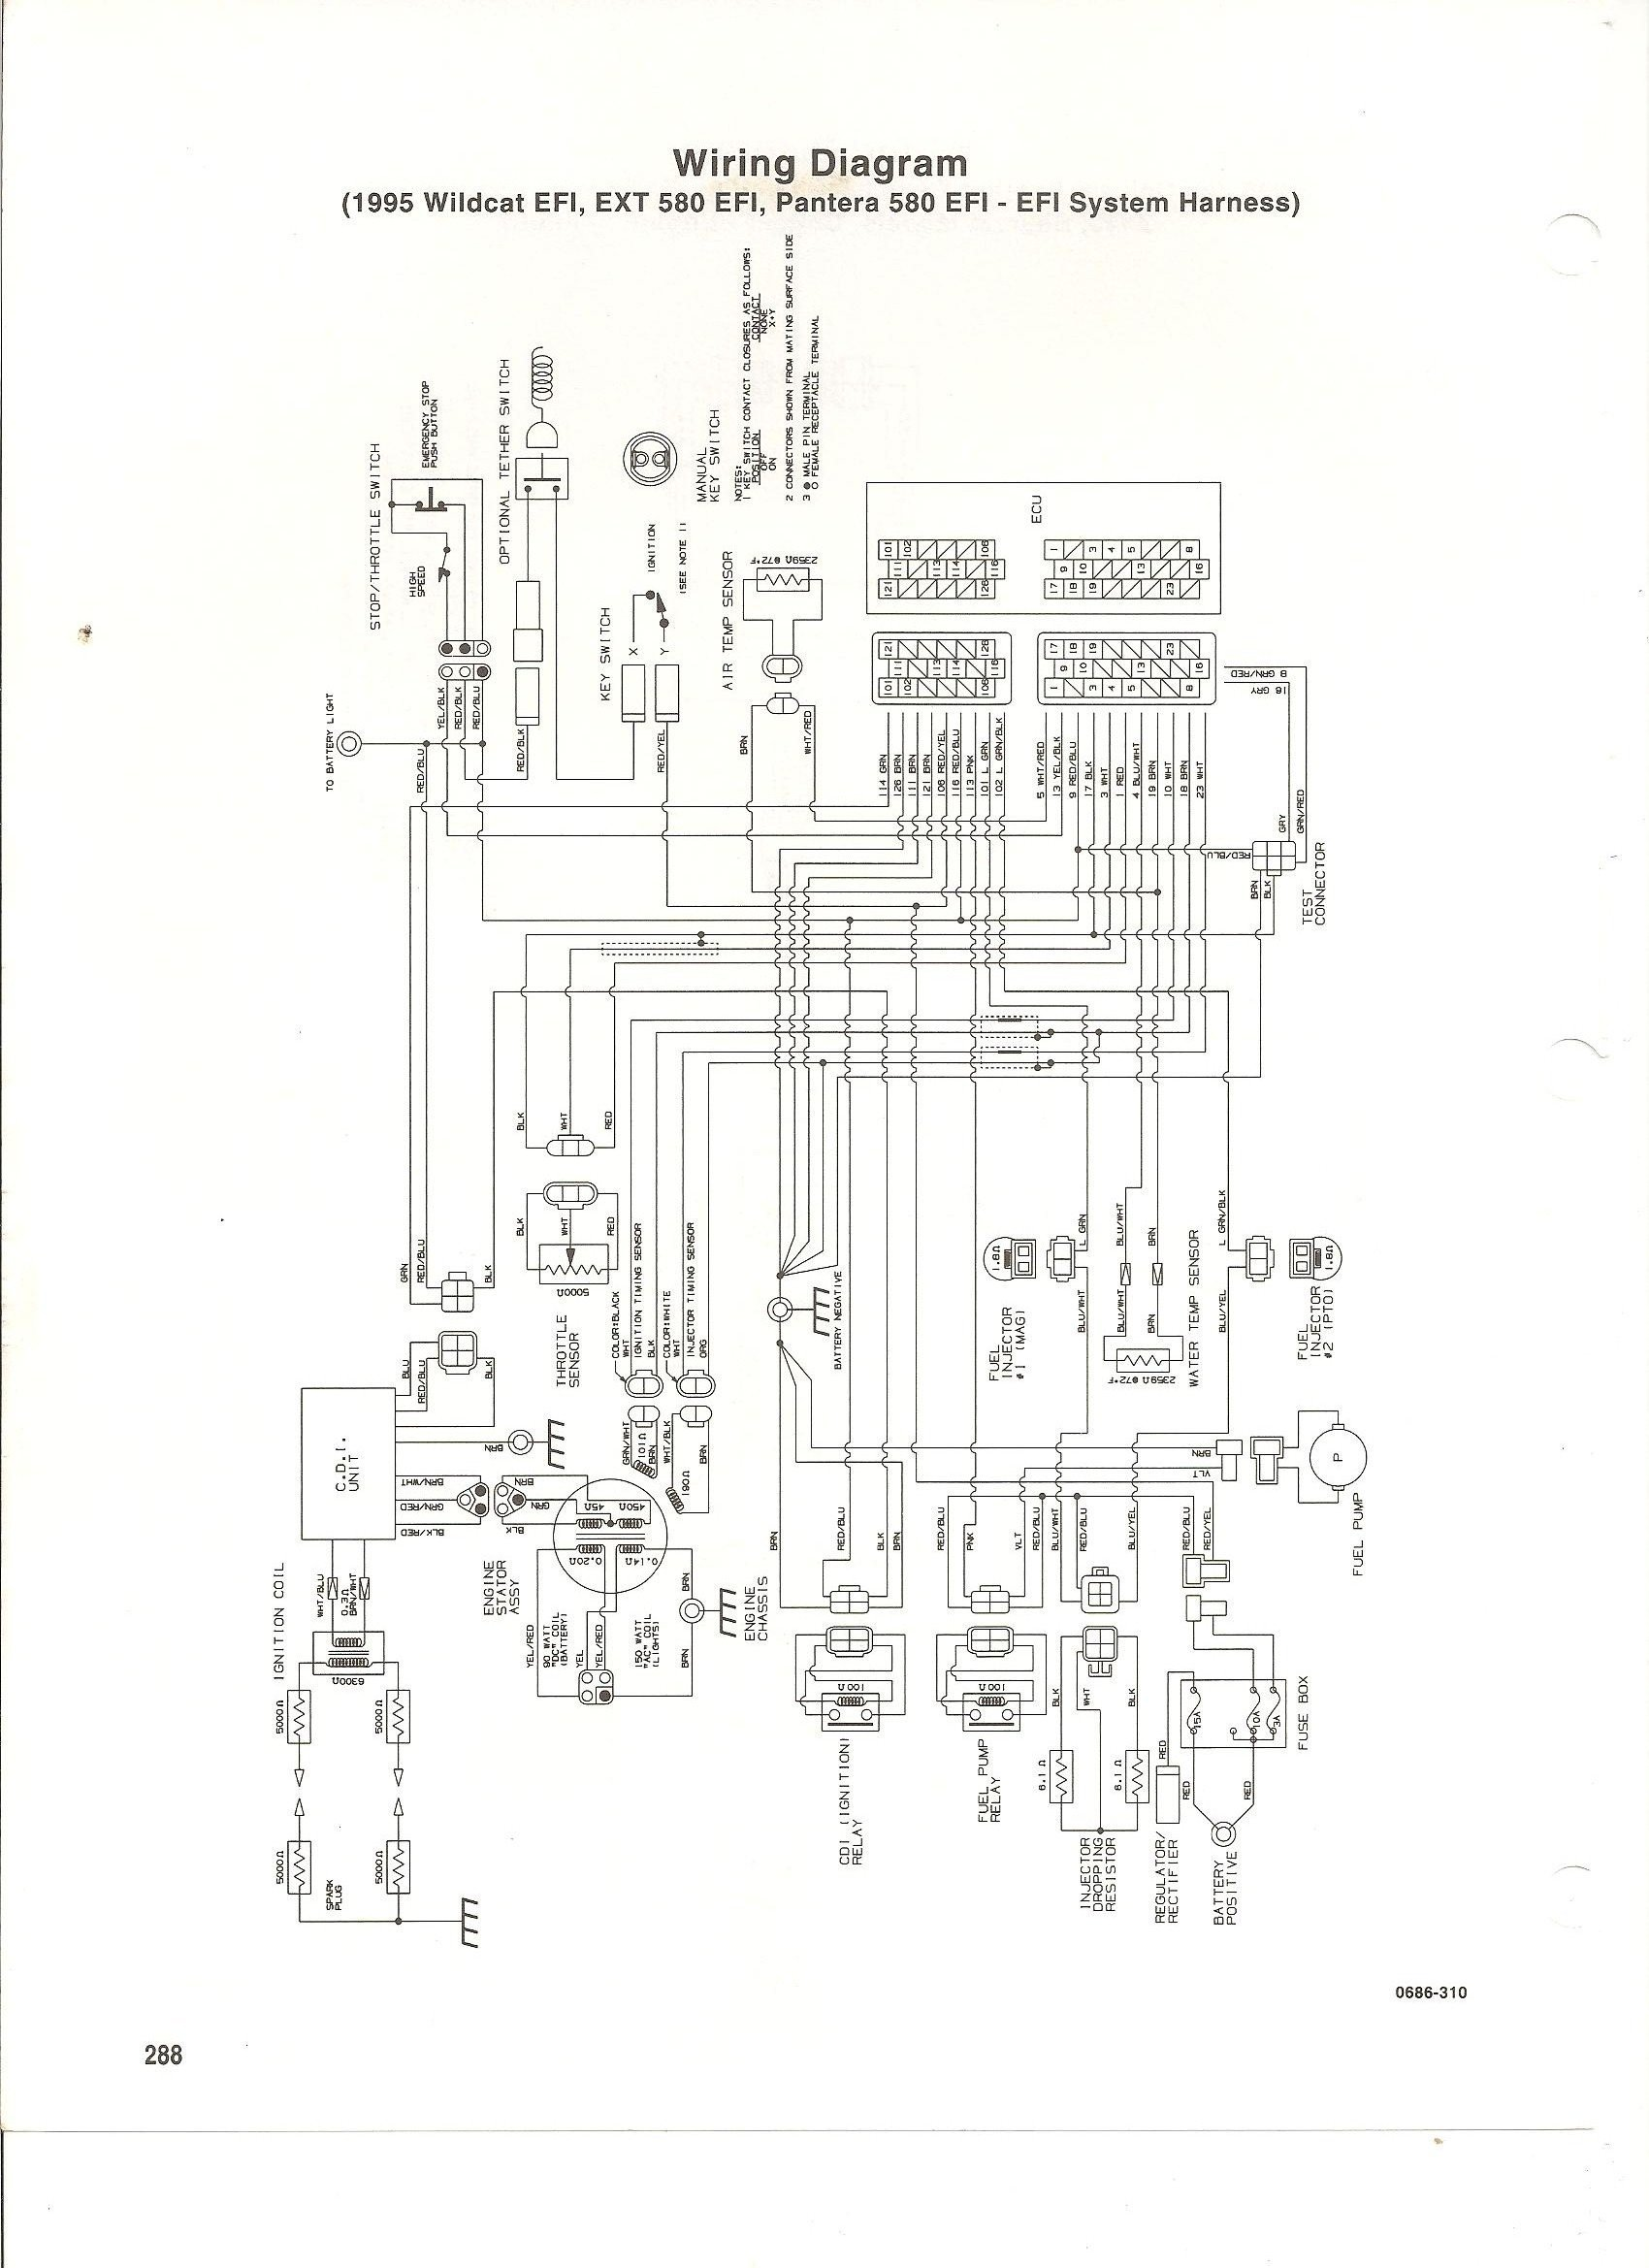 Vintage Snowmobile Wiring Diagrams